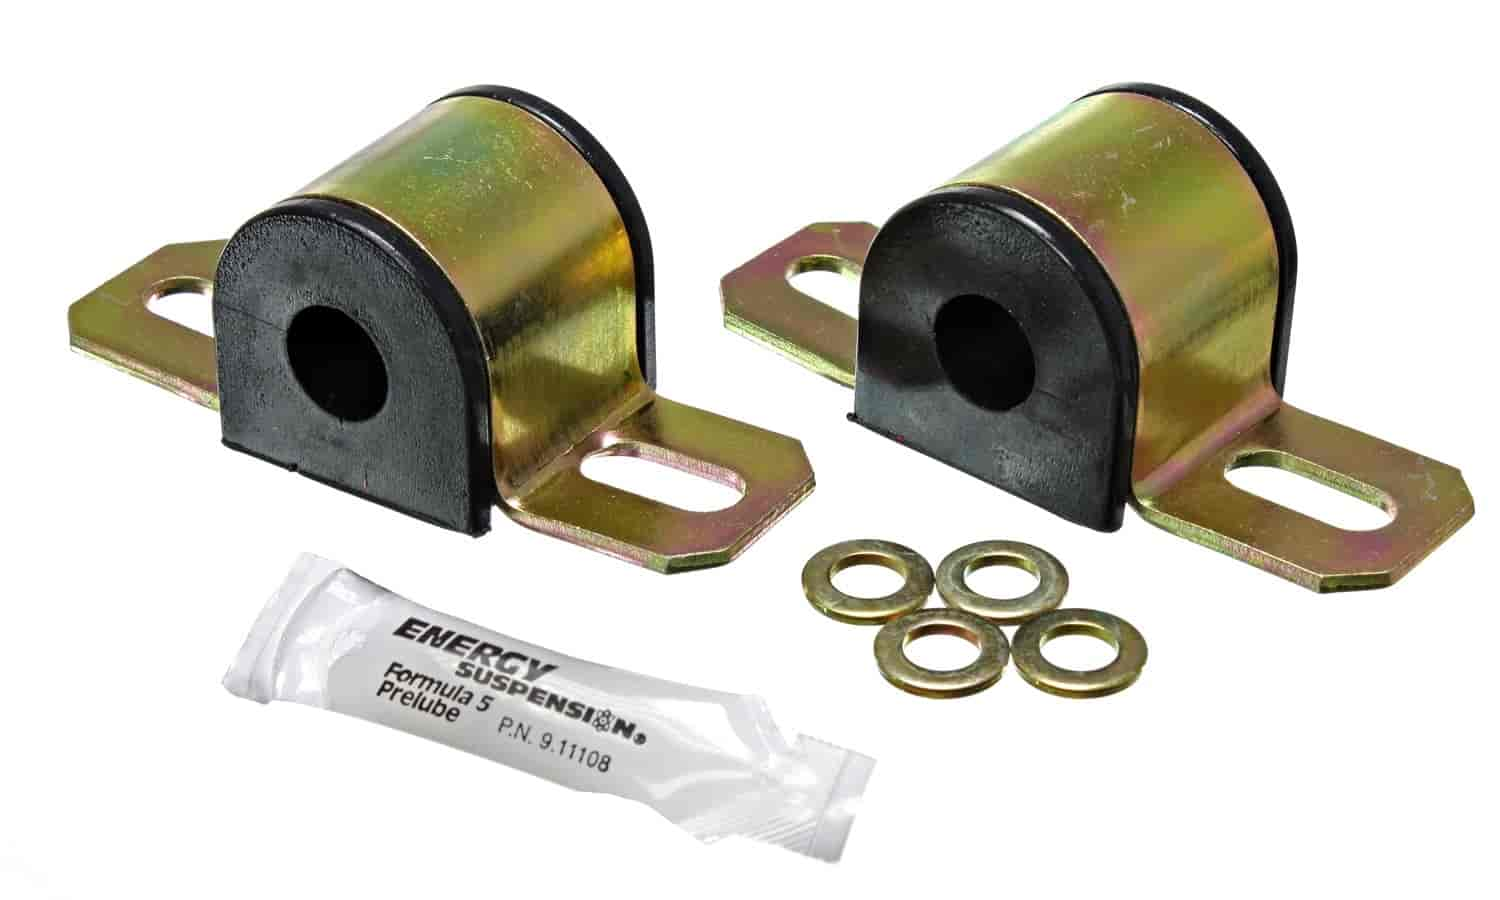 Energy Suspension 9-5107G